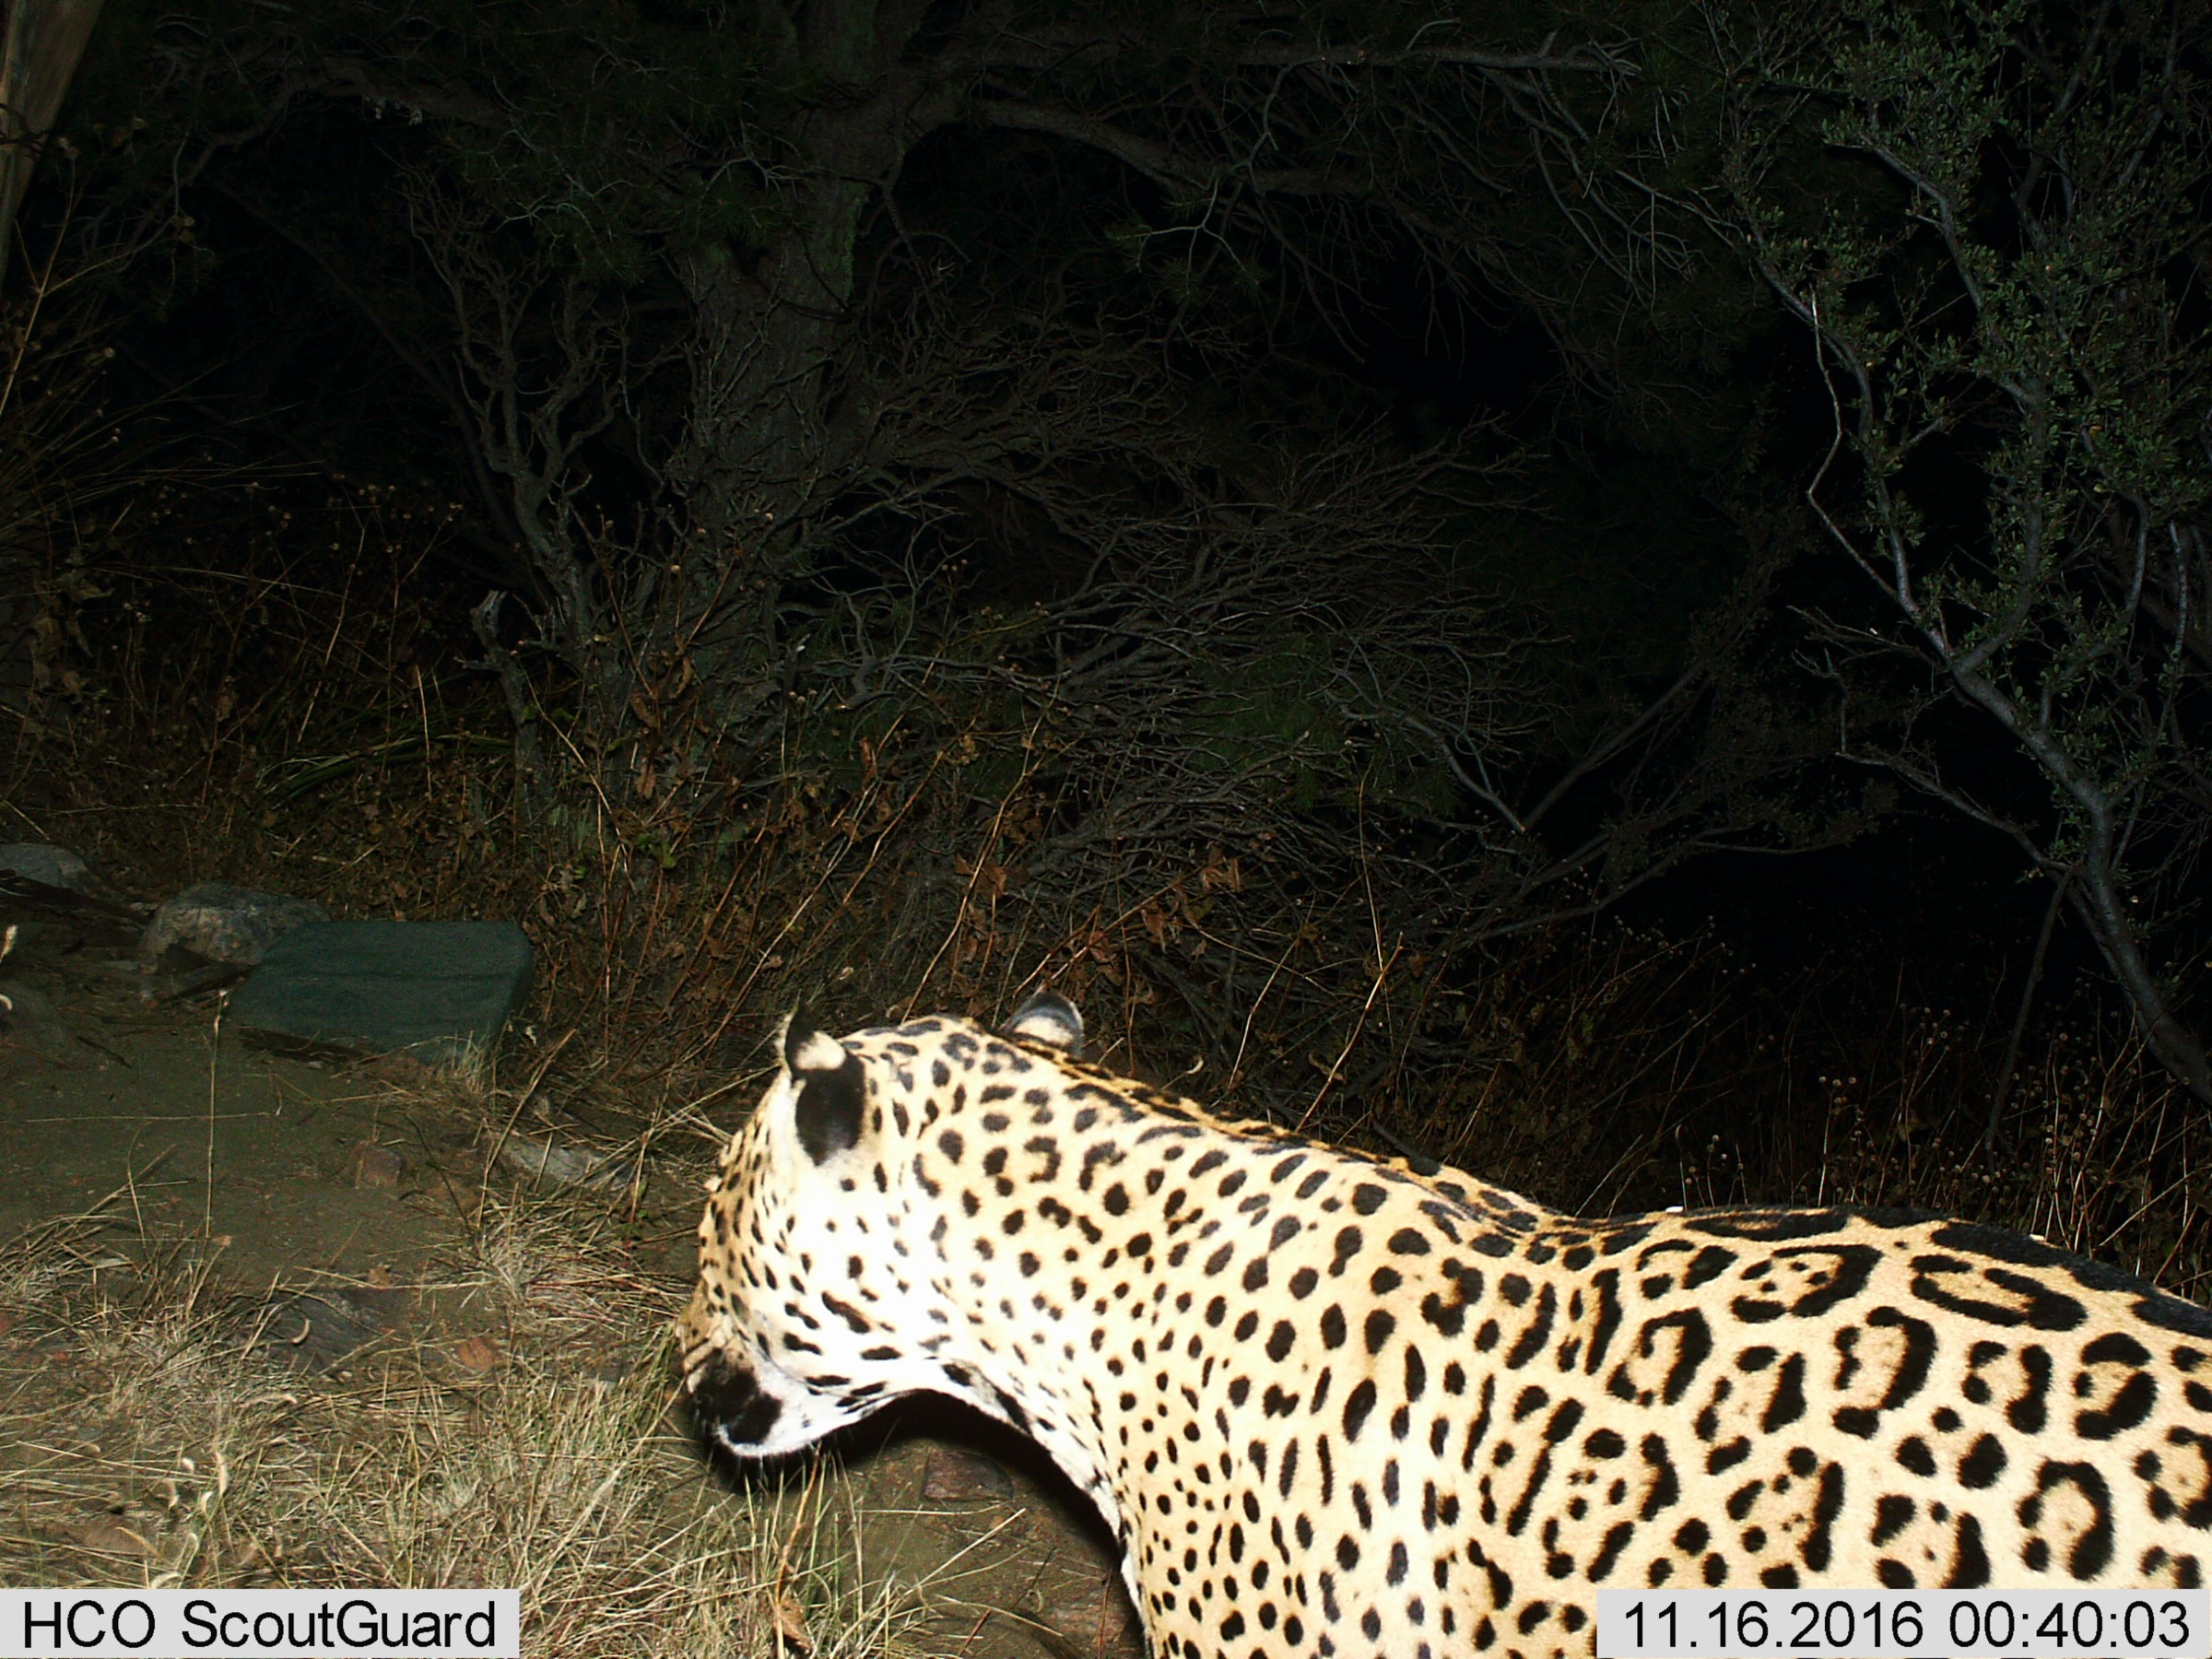 This jaguar was photographed by a camera trap in the Dos Cabezas Mountains of southeastern Arizona in November 2016. This is first photograph of this individual and represents the 7th known jaguar documented in the U.S. since 1996. The sex of the animal can not be determined from the photo. Photograph courtesy of the Bureau of Land Management